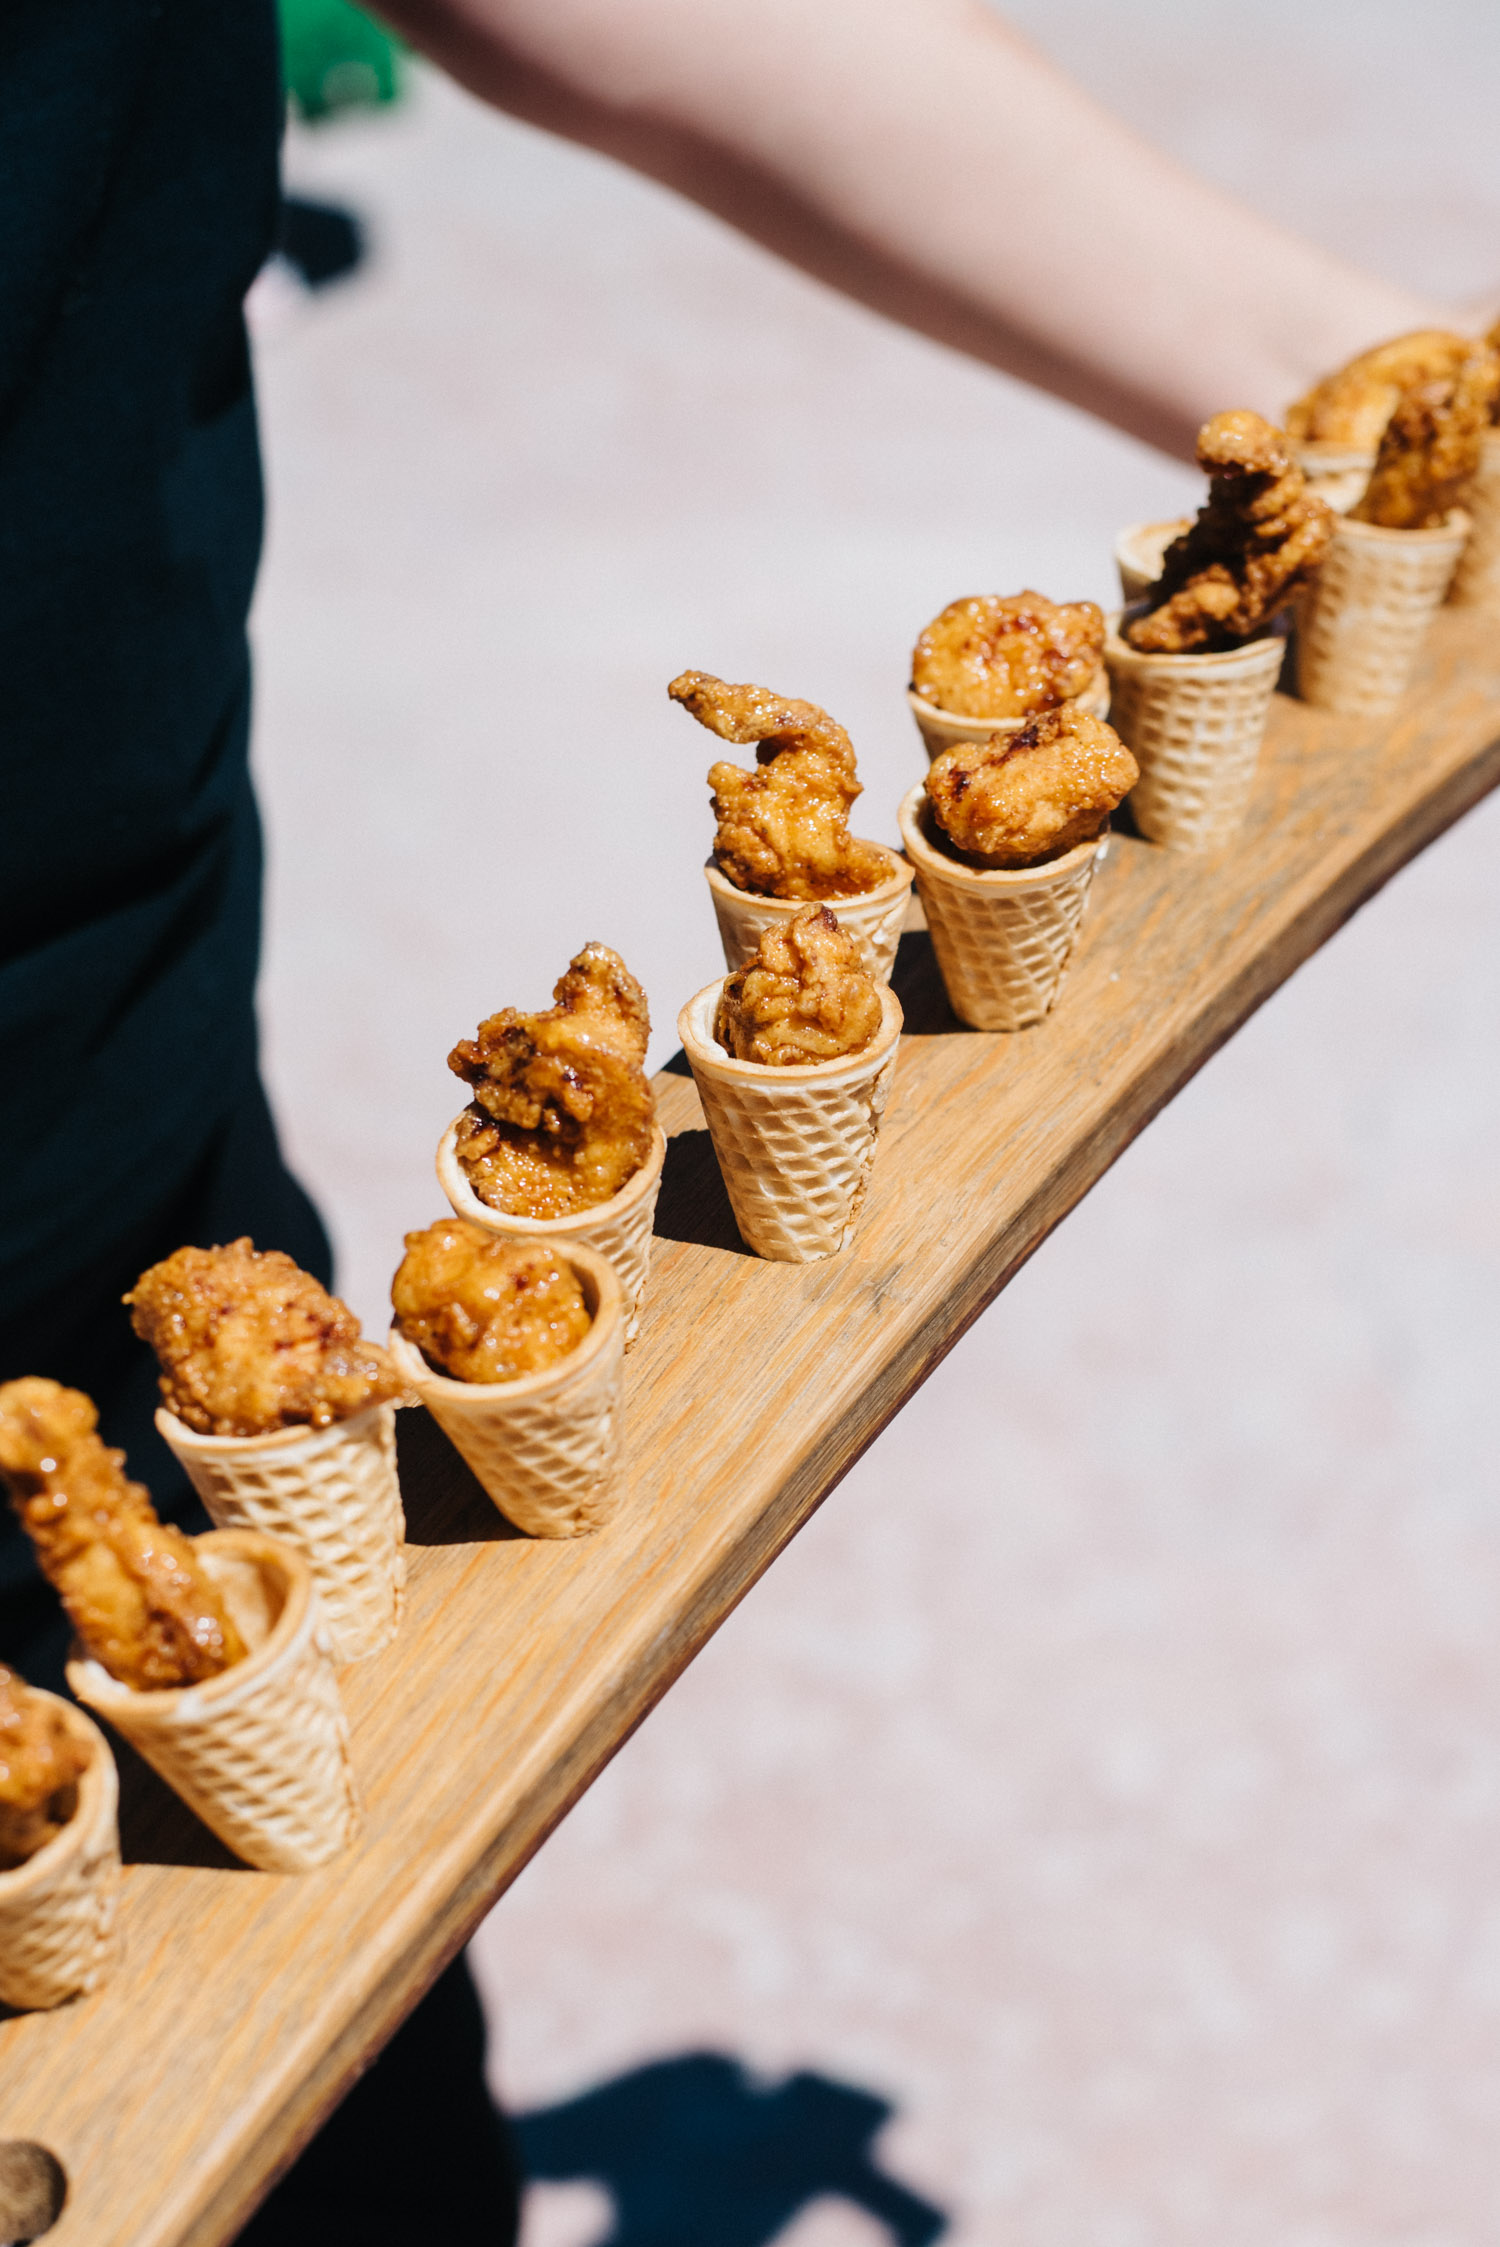 """ Chicken & Waffle Cones "" -  F10 Catering  image credit:  Sarah Dickenson"